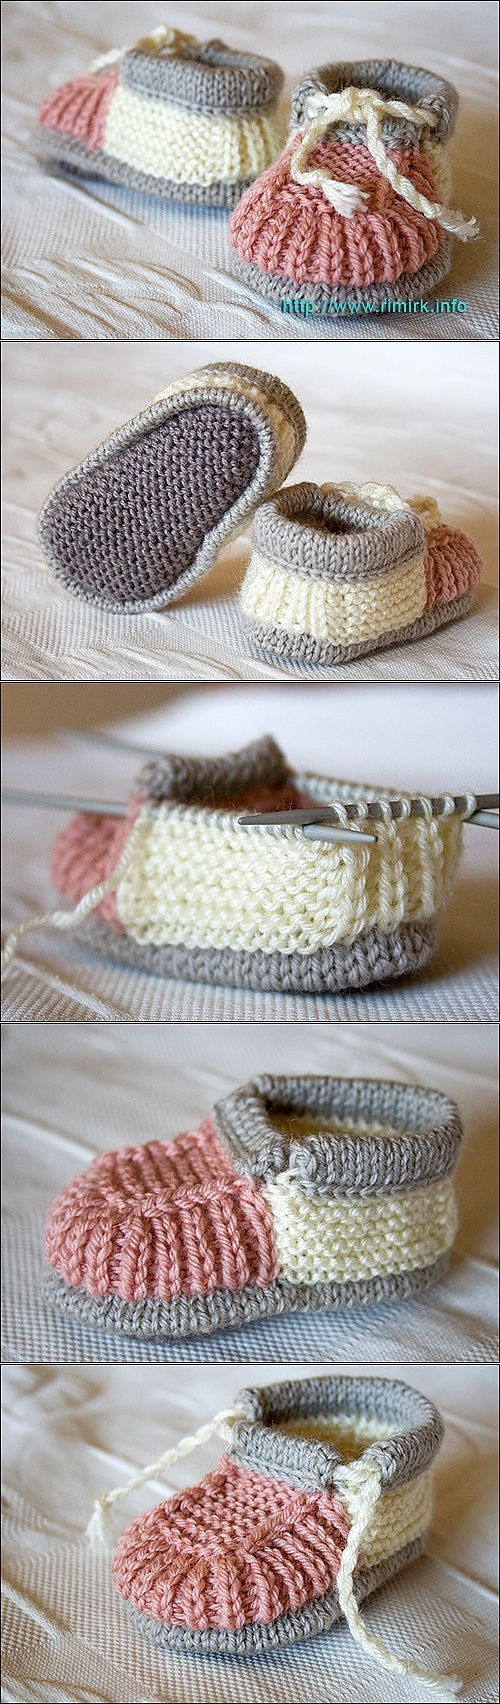 40 + Knit Baby Booties with Pattern - Mais